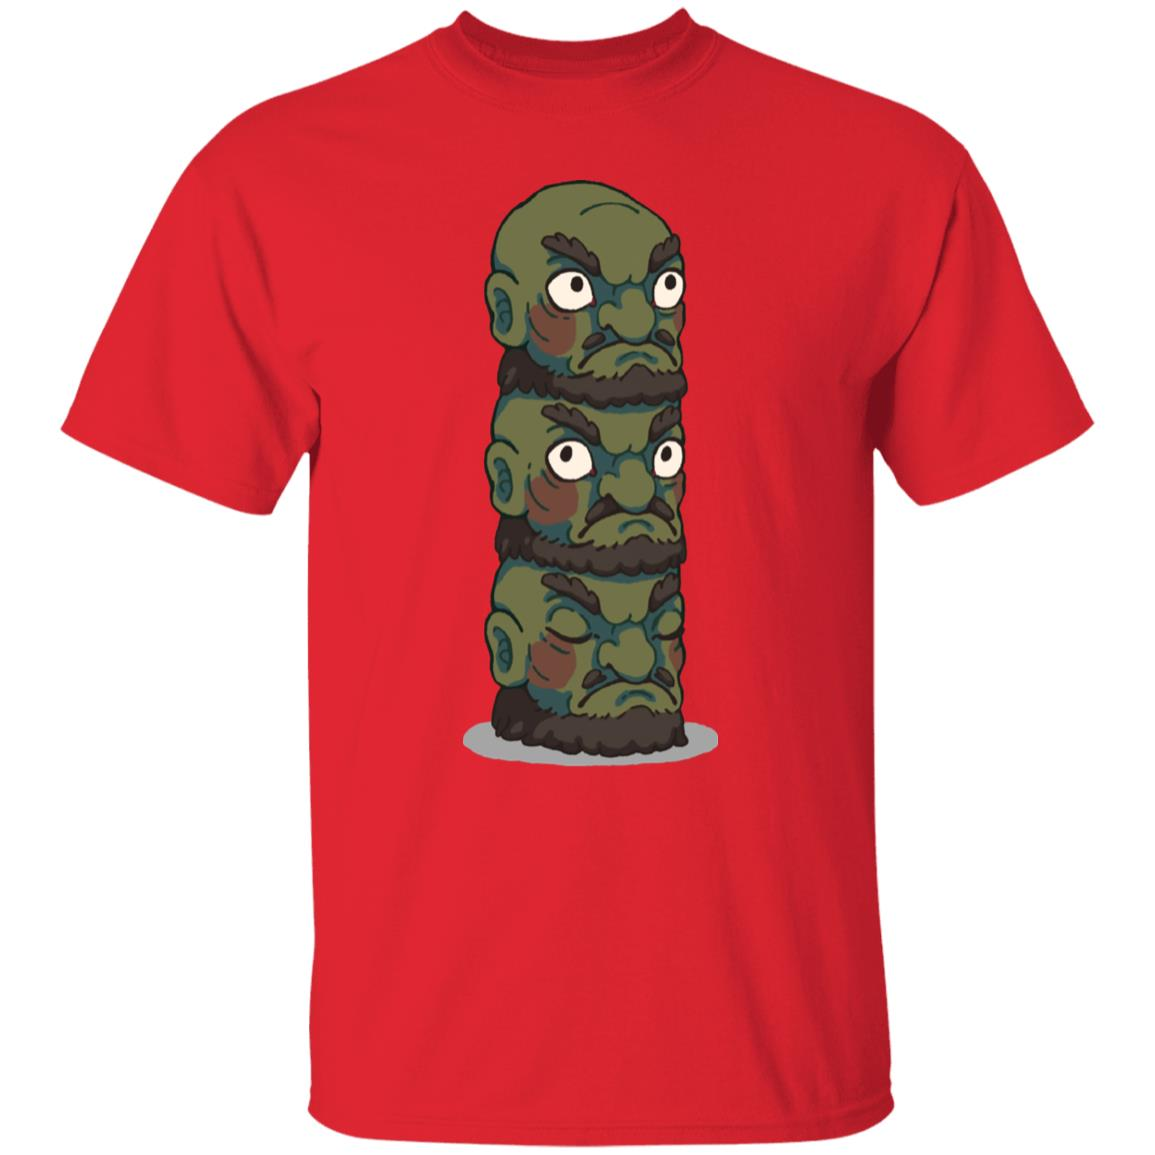 Spirited Away – Yubaba Kashira 3 Heads T Shirt